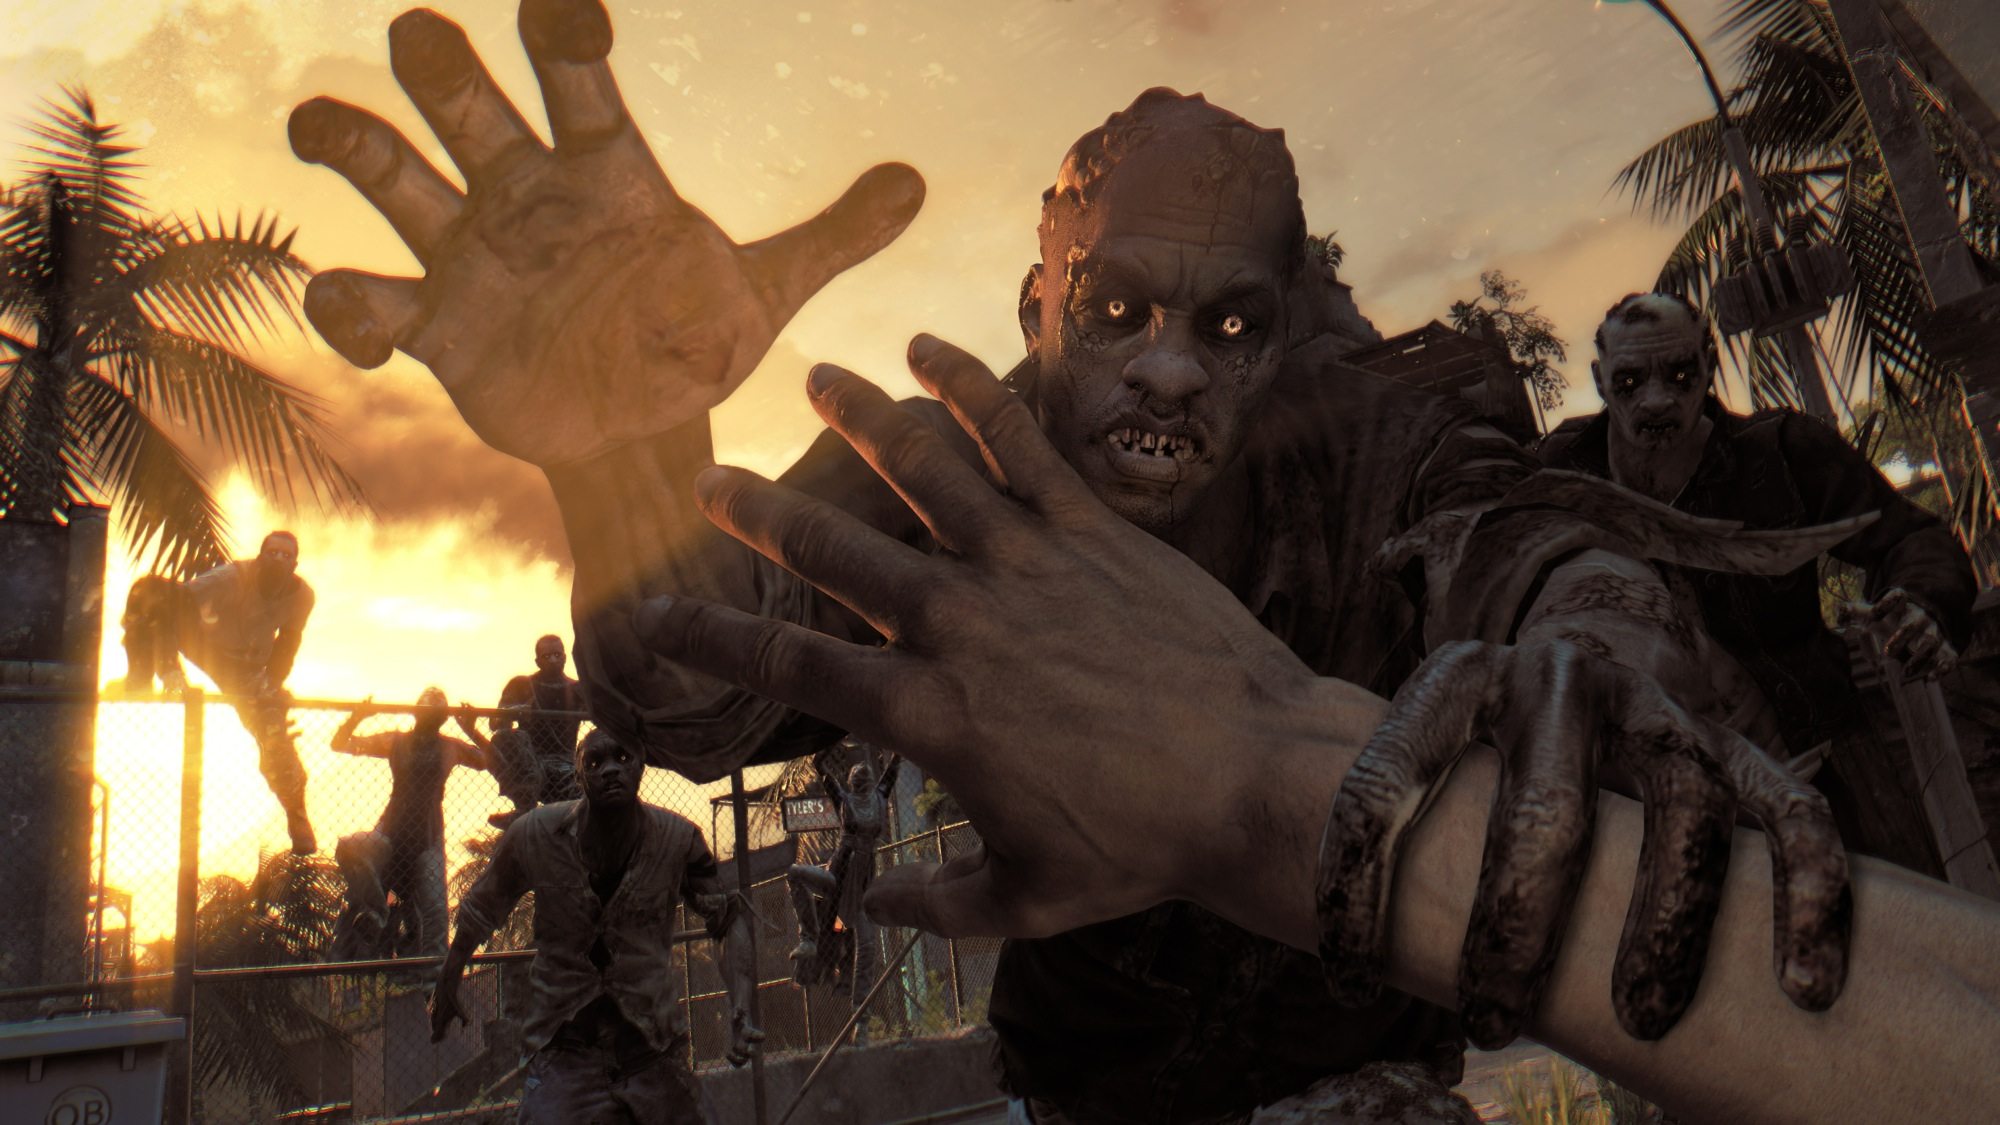 Dying Light PC Mod blocking Patch was a mix-up.